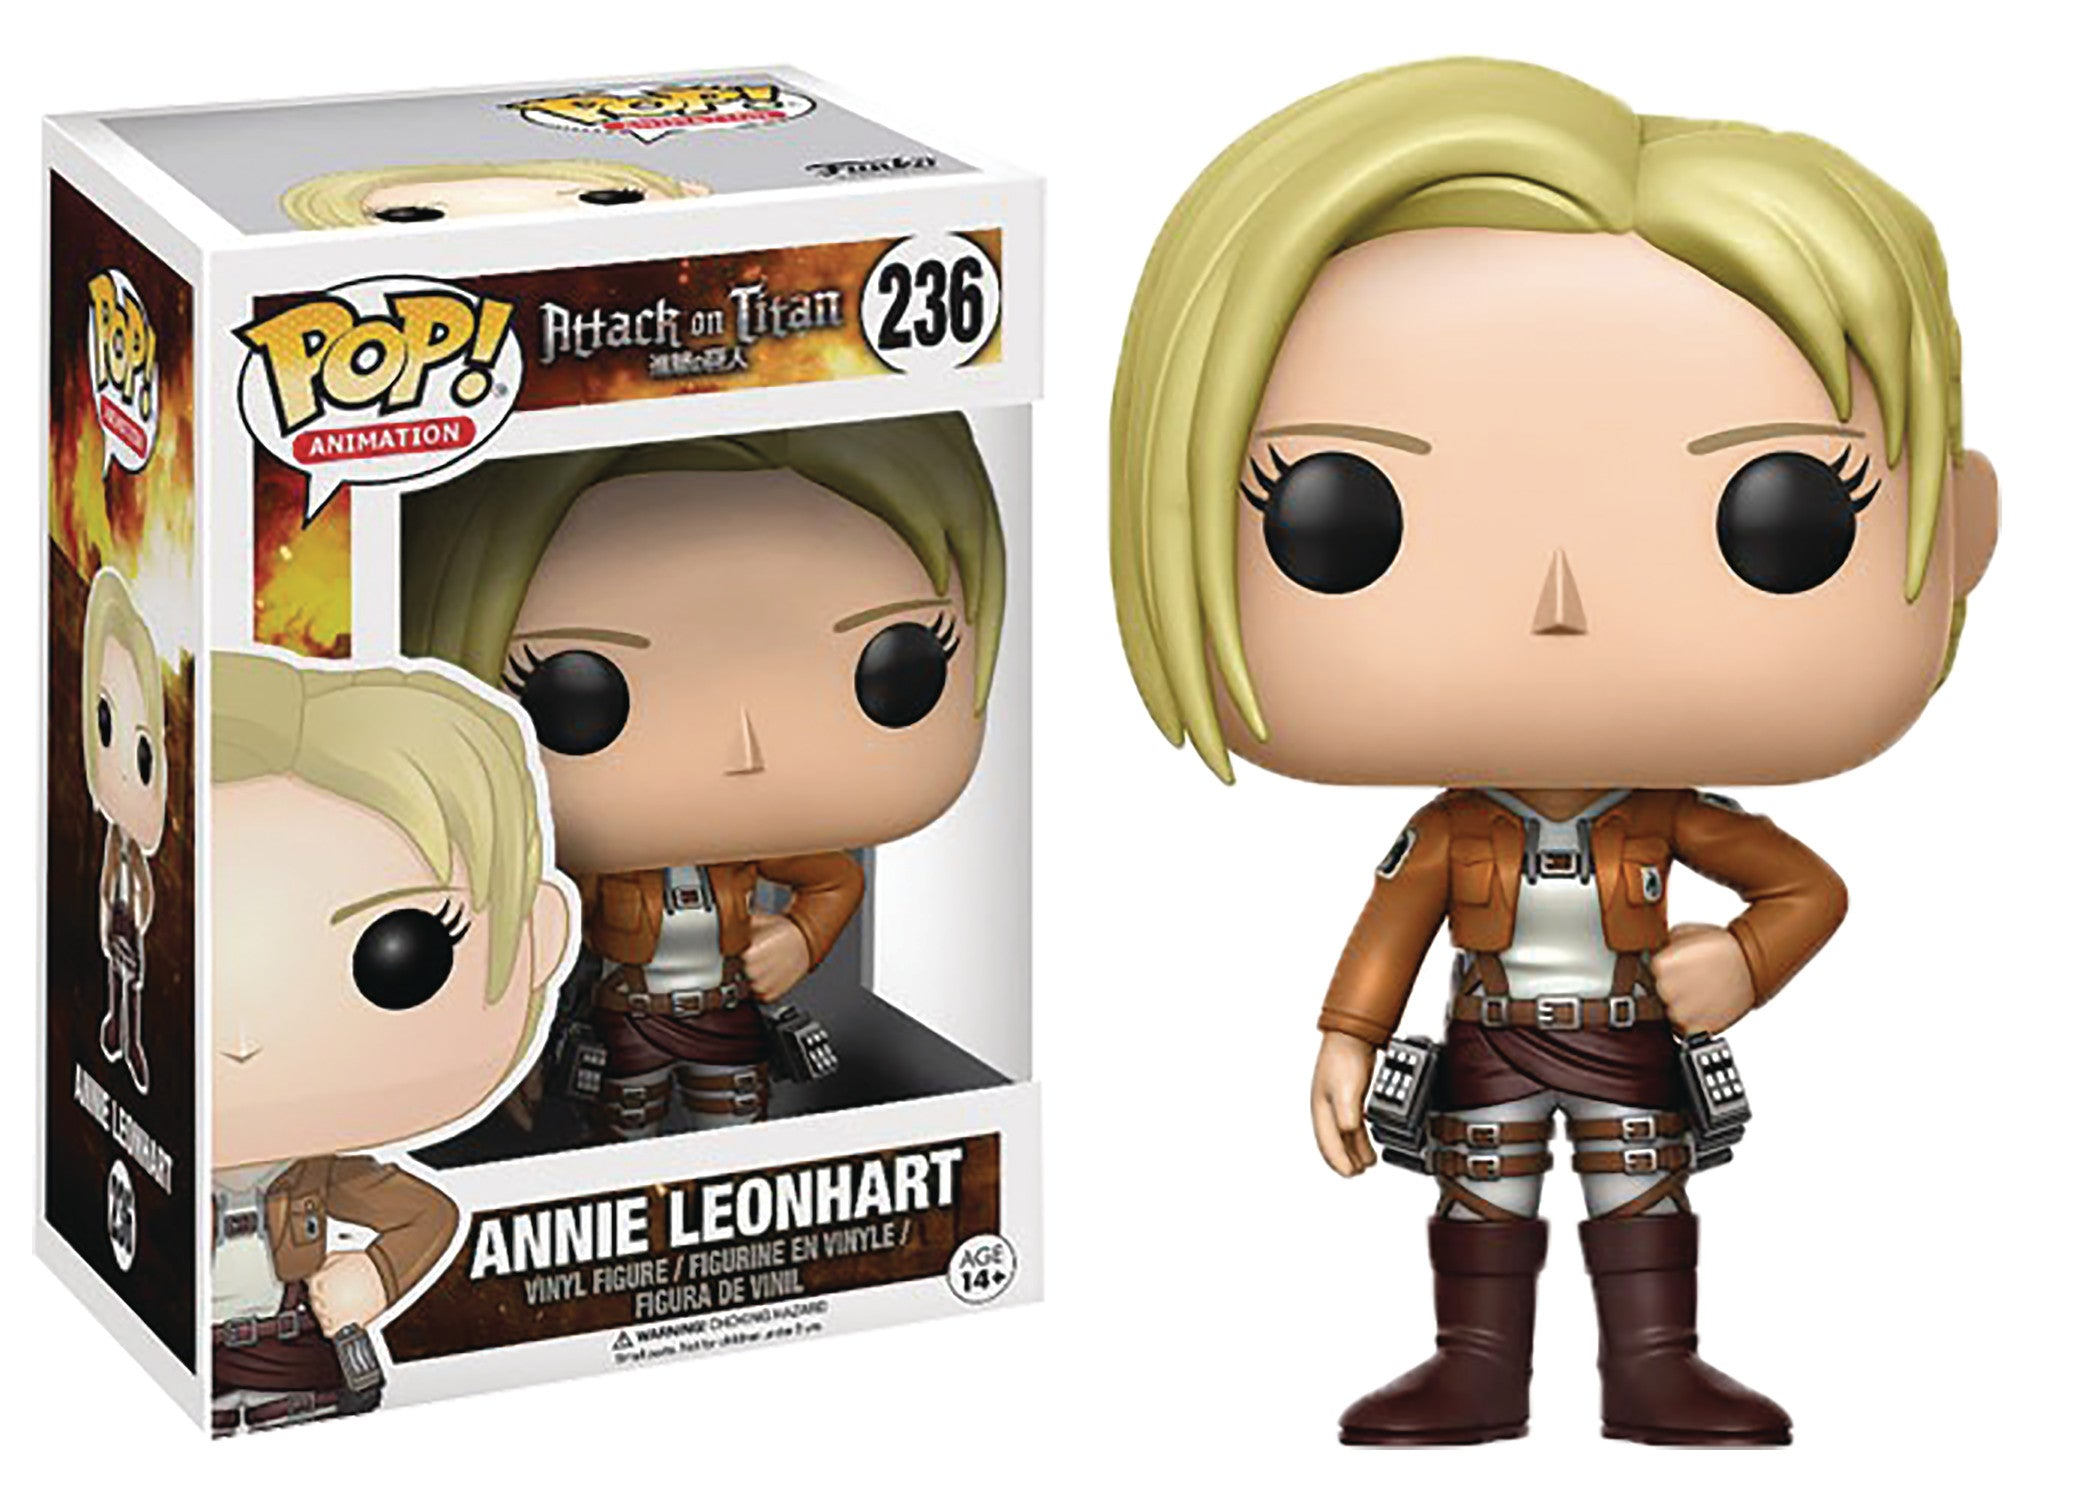 POP ATTACK ON TITAN ANNIE LEONHART VINYL FIG